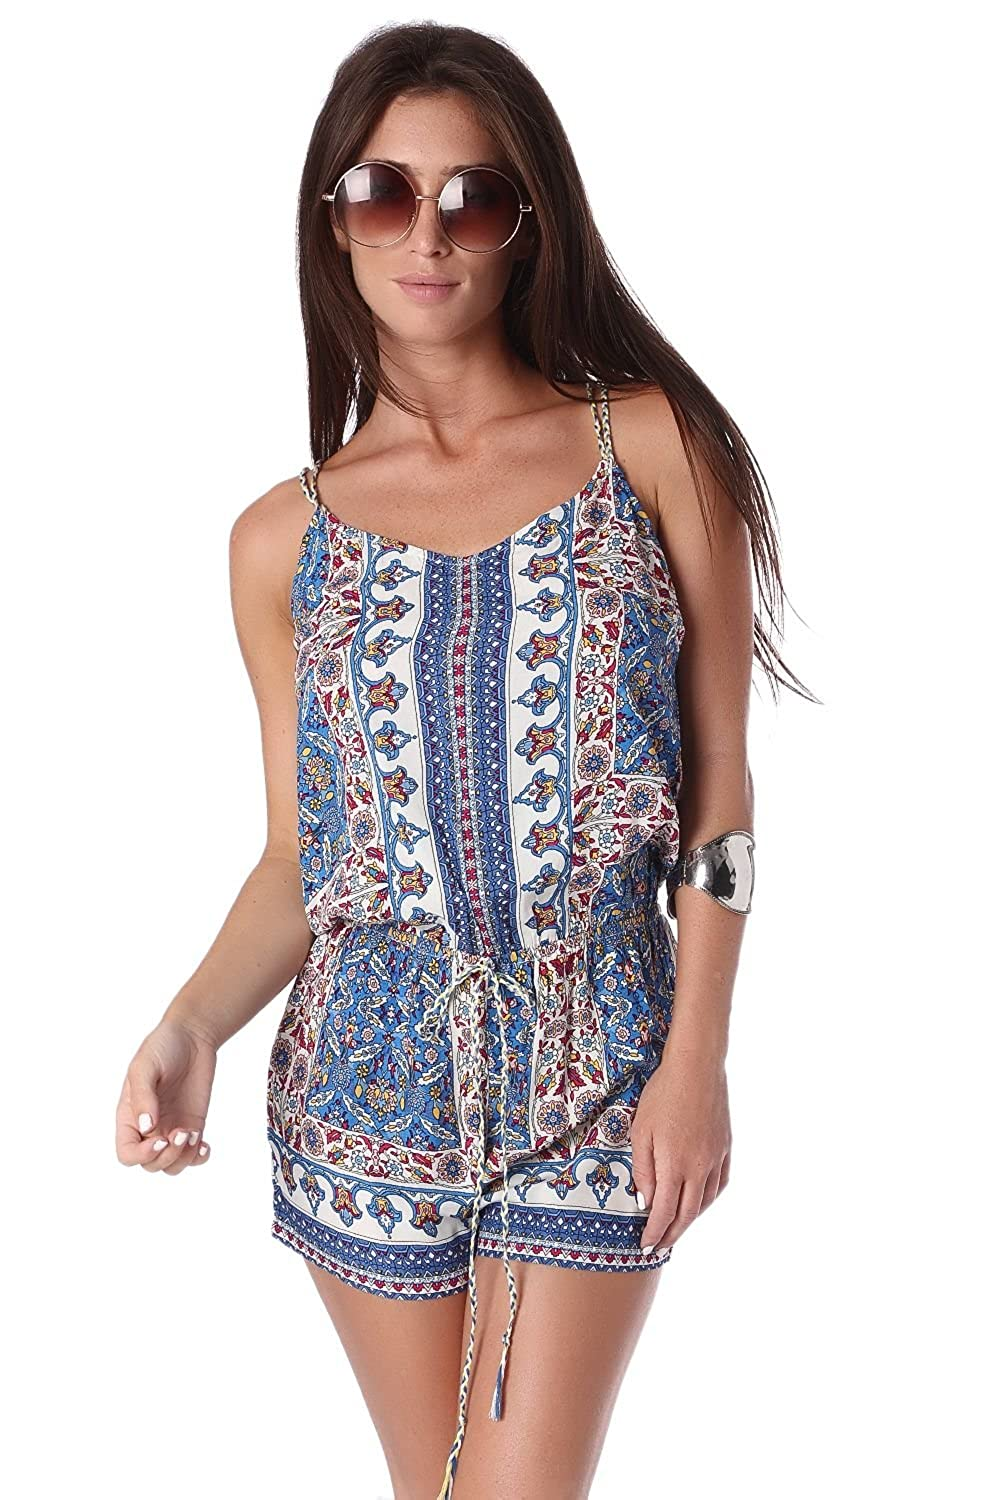 Q2 Women's Blue playsuit in print with lace up back